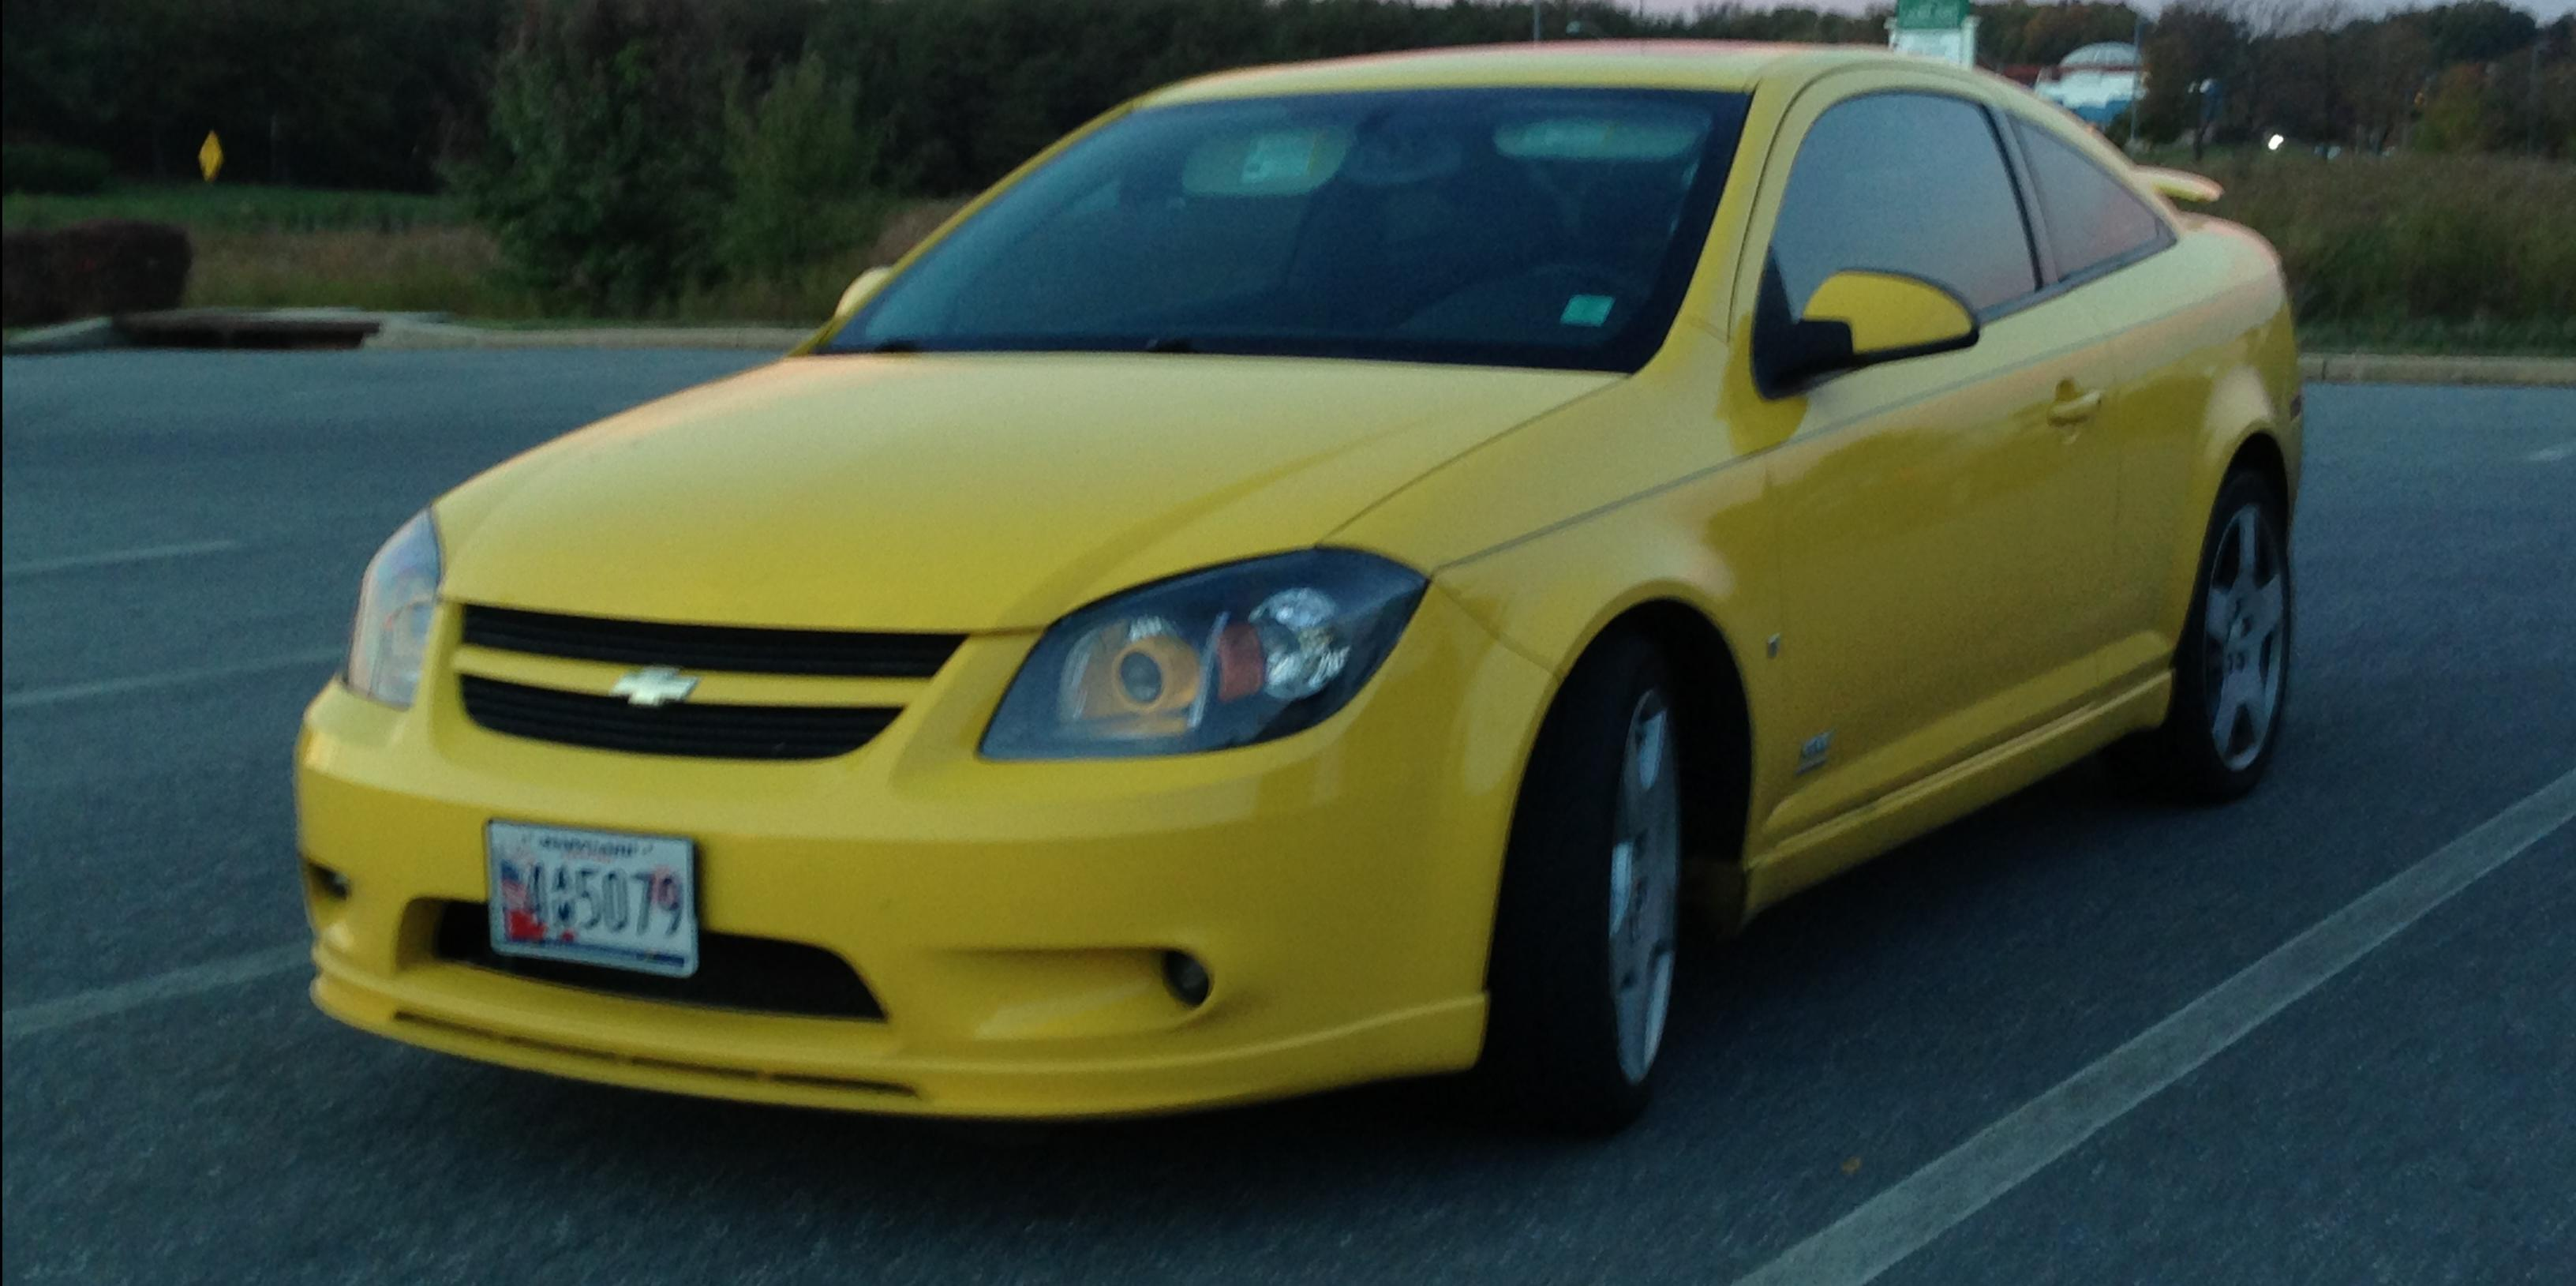 Haven07's 2007 Chevrolet Cobalt